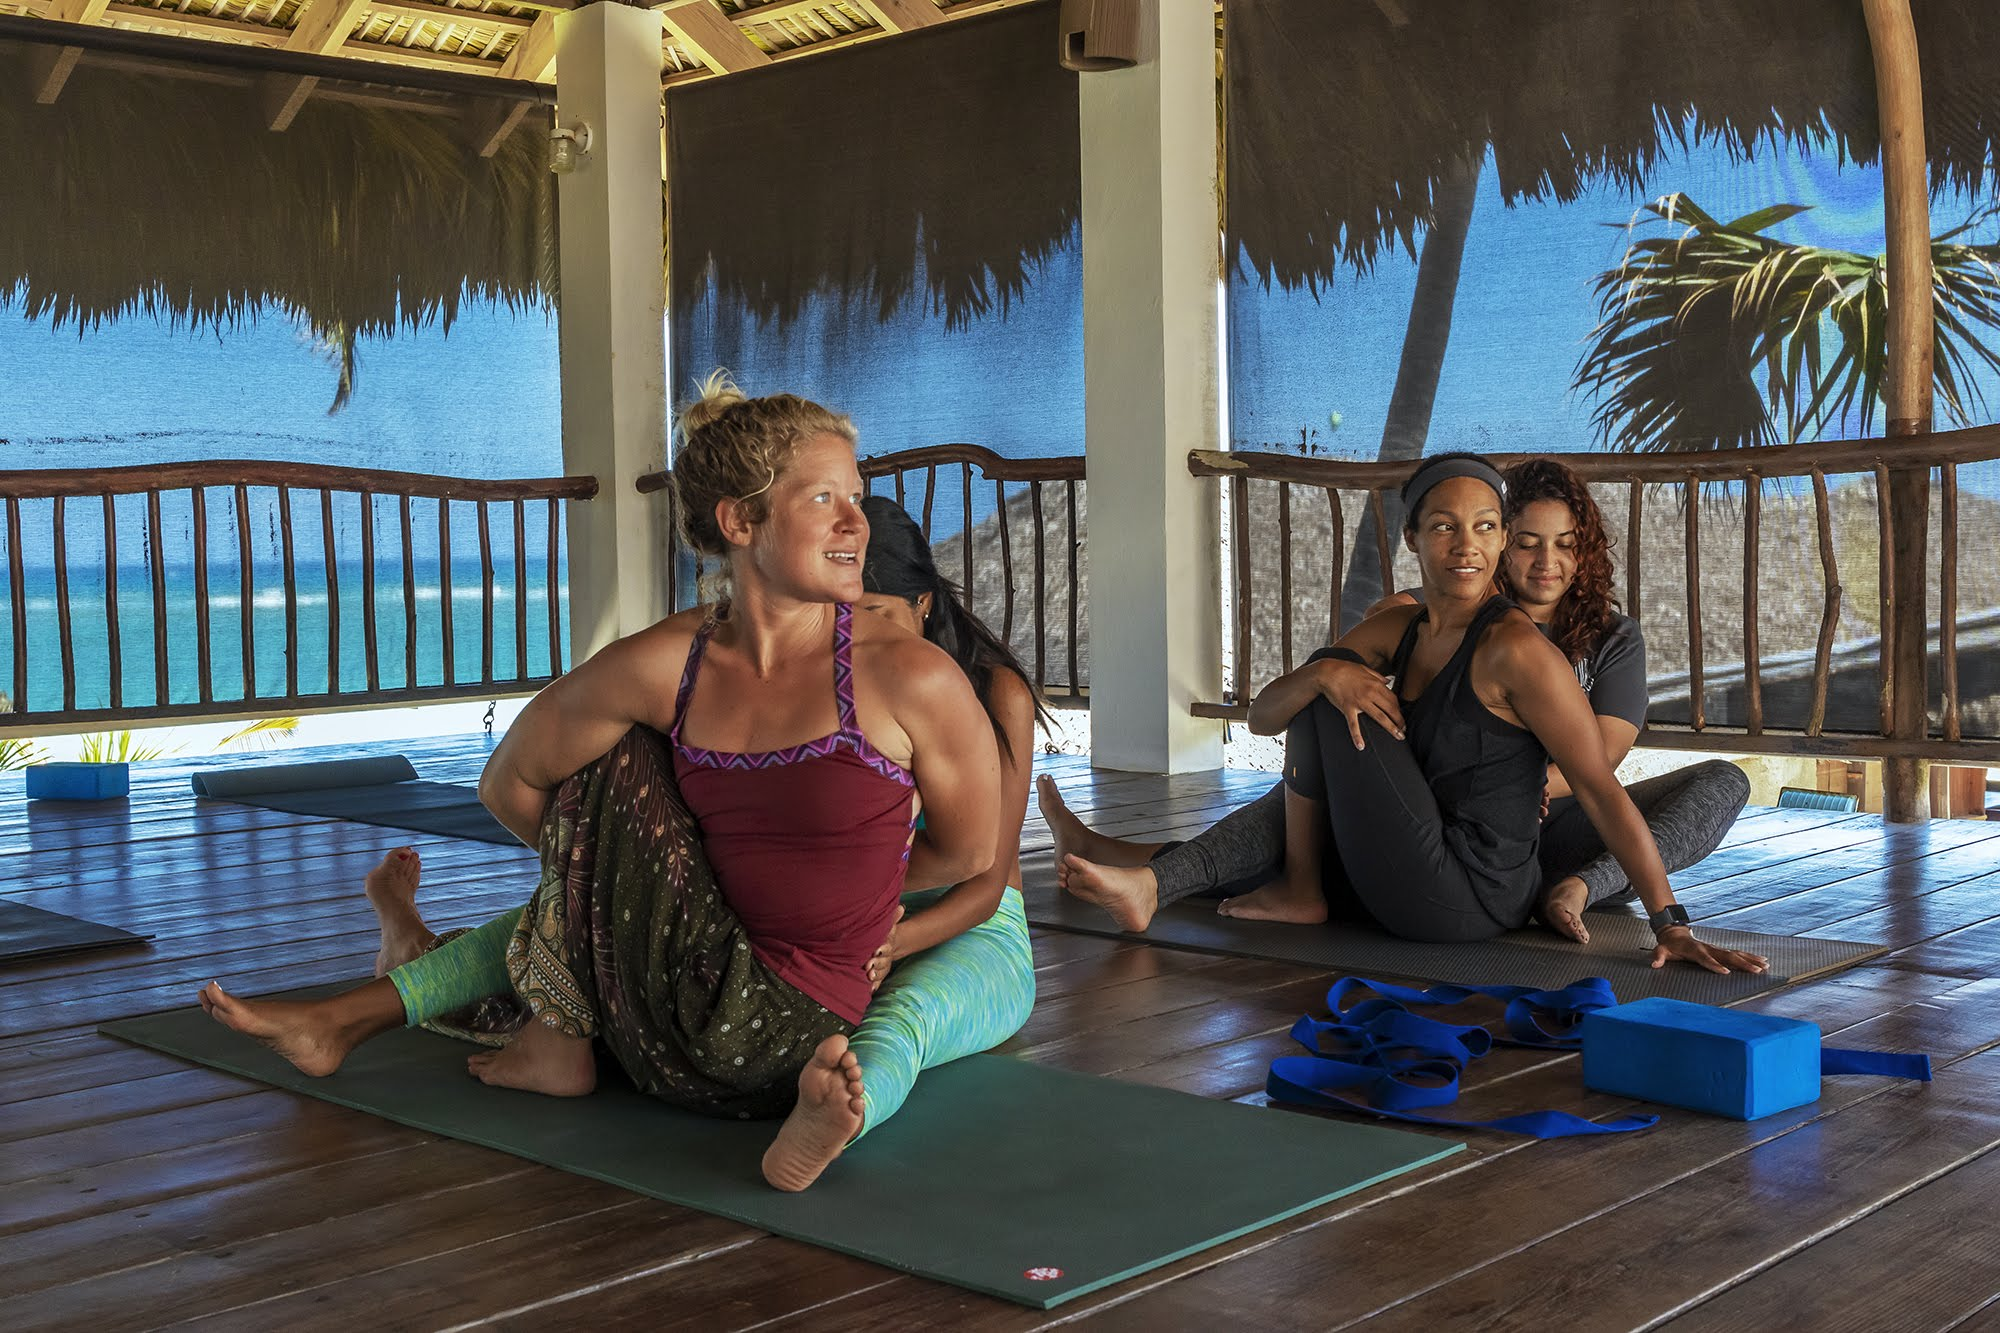 Stunning Caribbean Beachfront Location The Yoga Loft Cabarete Dominican Republic